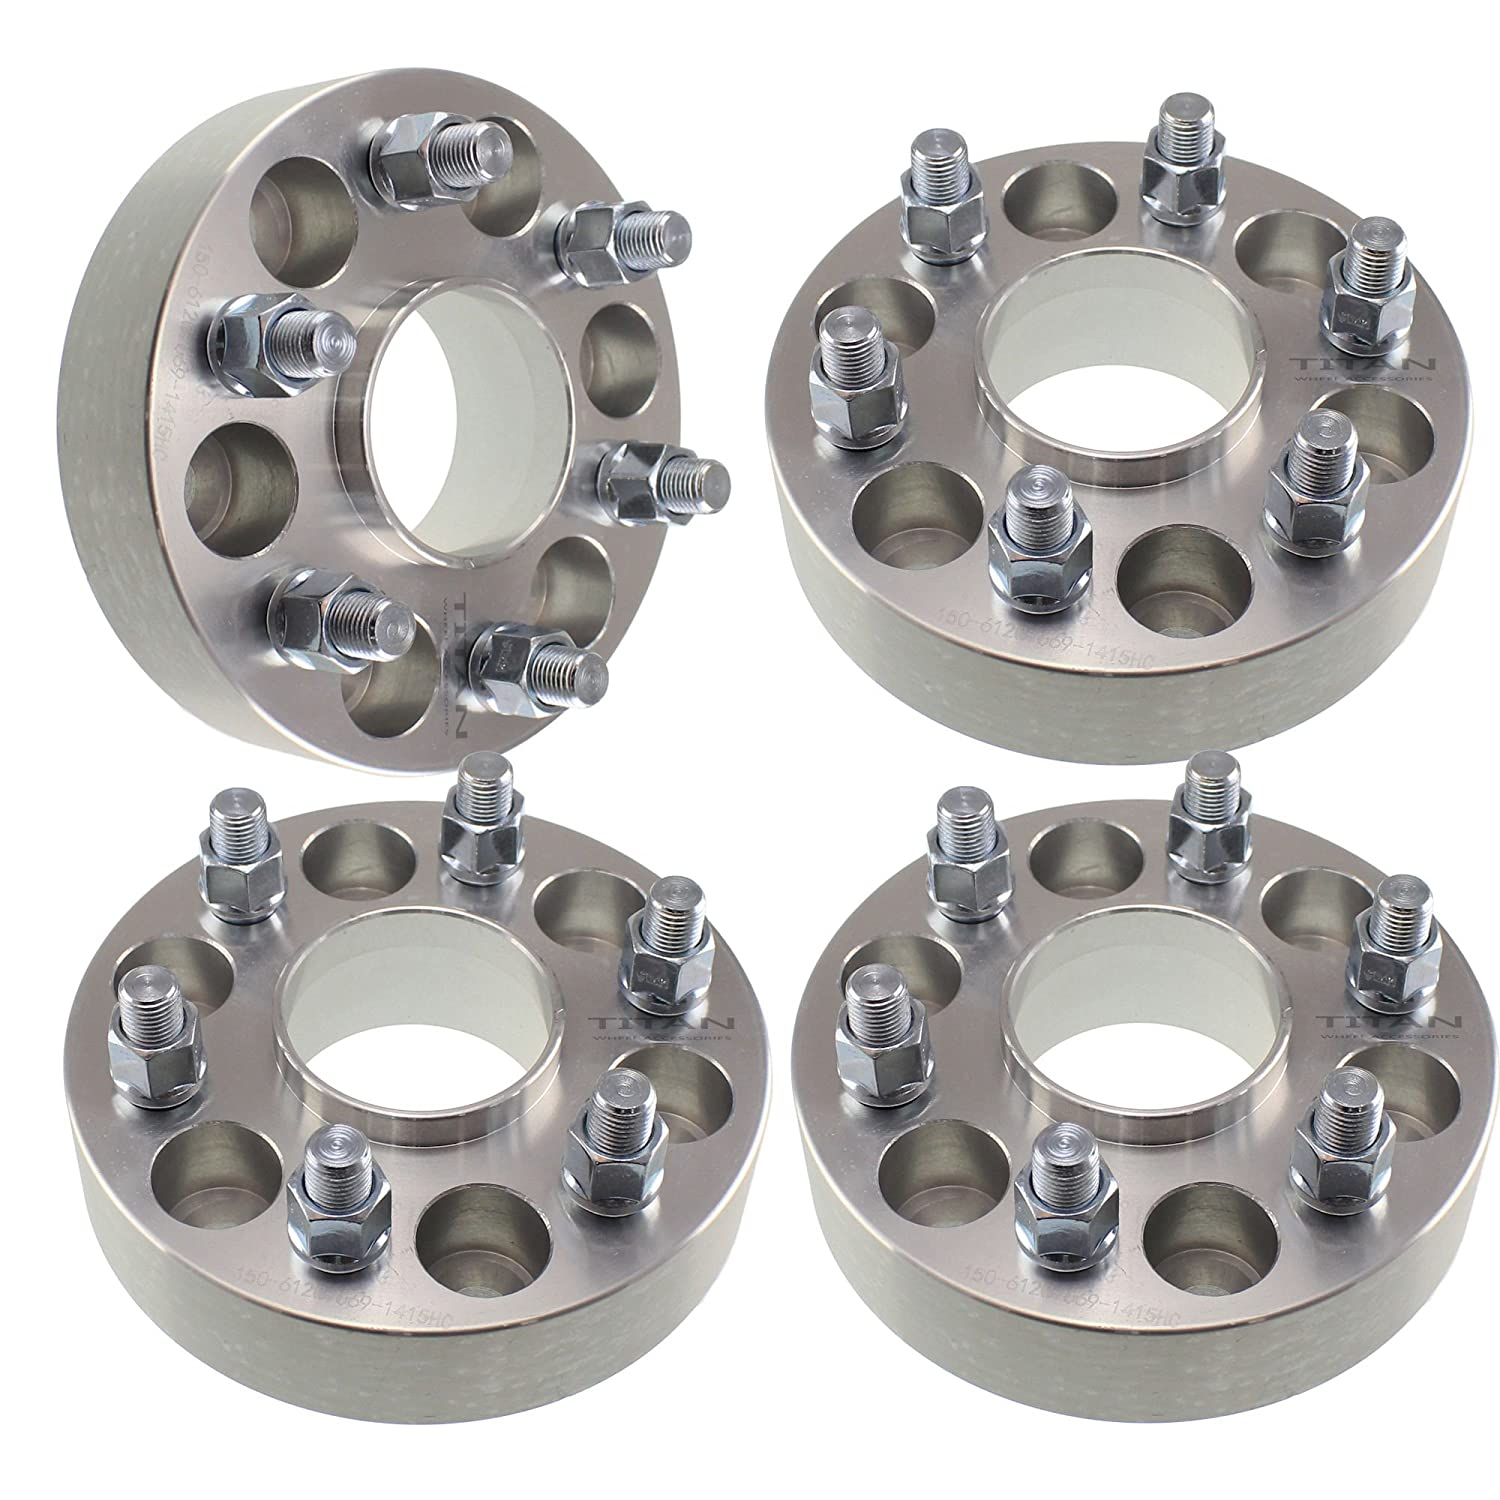 4pcs 2' Hubcentric 6x135 Wheel Spacers | 14x2 Studs | 87.1mm Hub Bore | Fits Ford Expedition F150 Lincoln Navigator Mark LT Adapters Titan Wheel Accessories